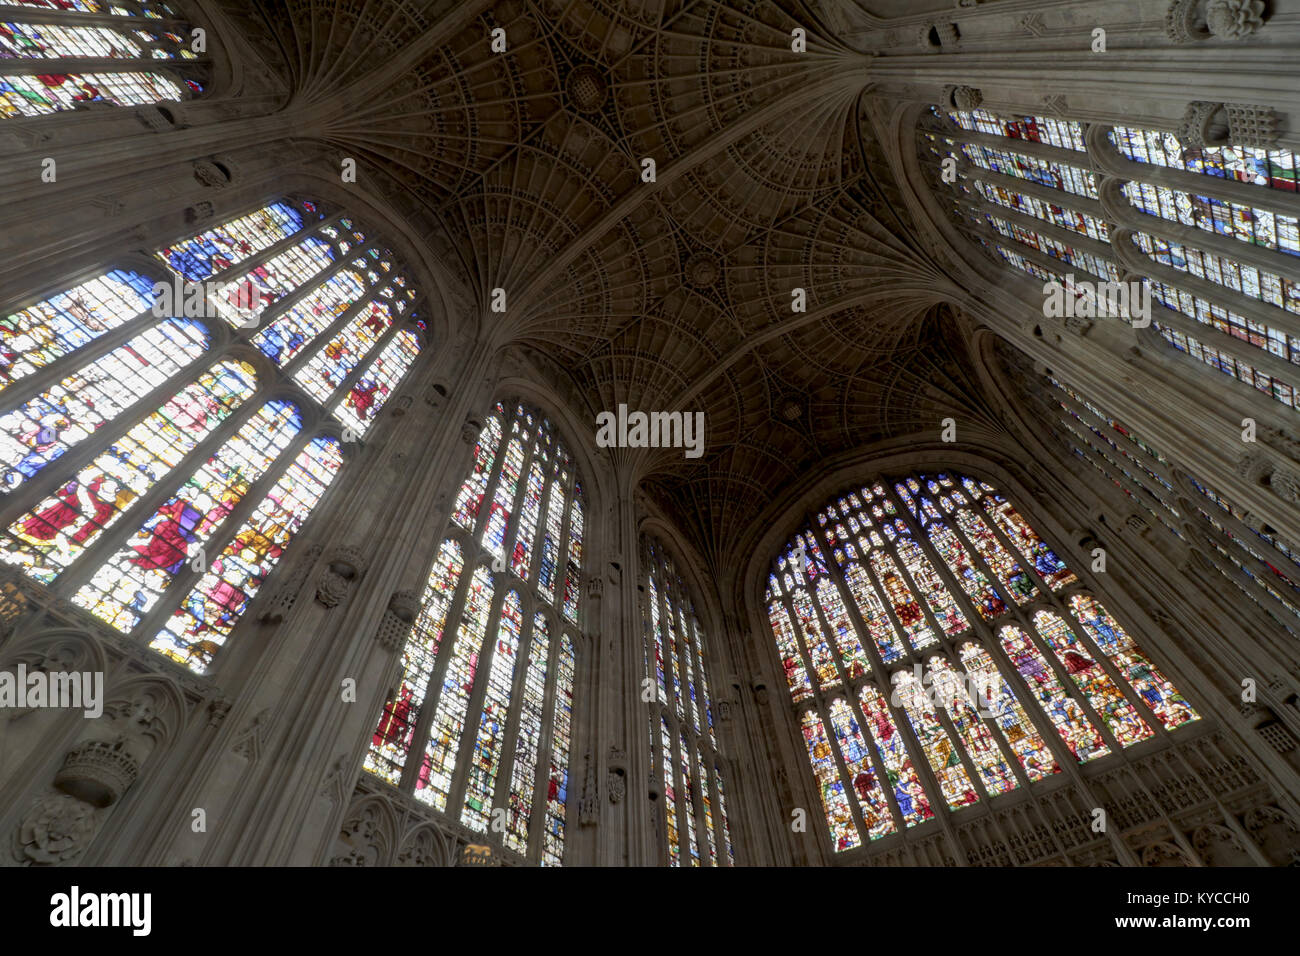 Fan vault ceiling and stained glass of Kings College chapel at the University of Cambridge, England - Stock Image